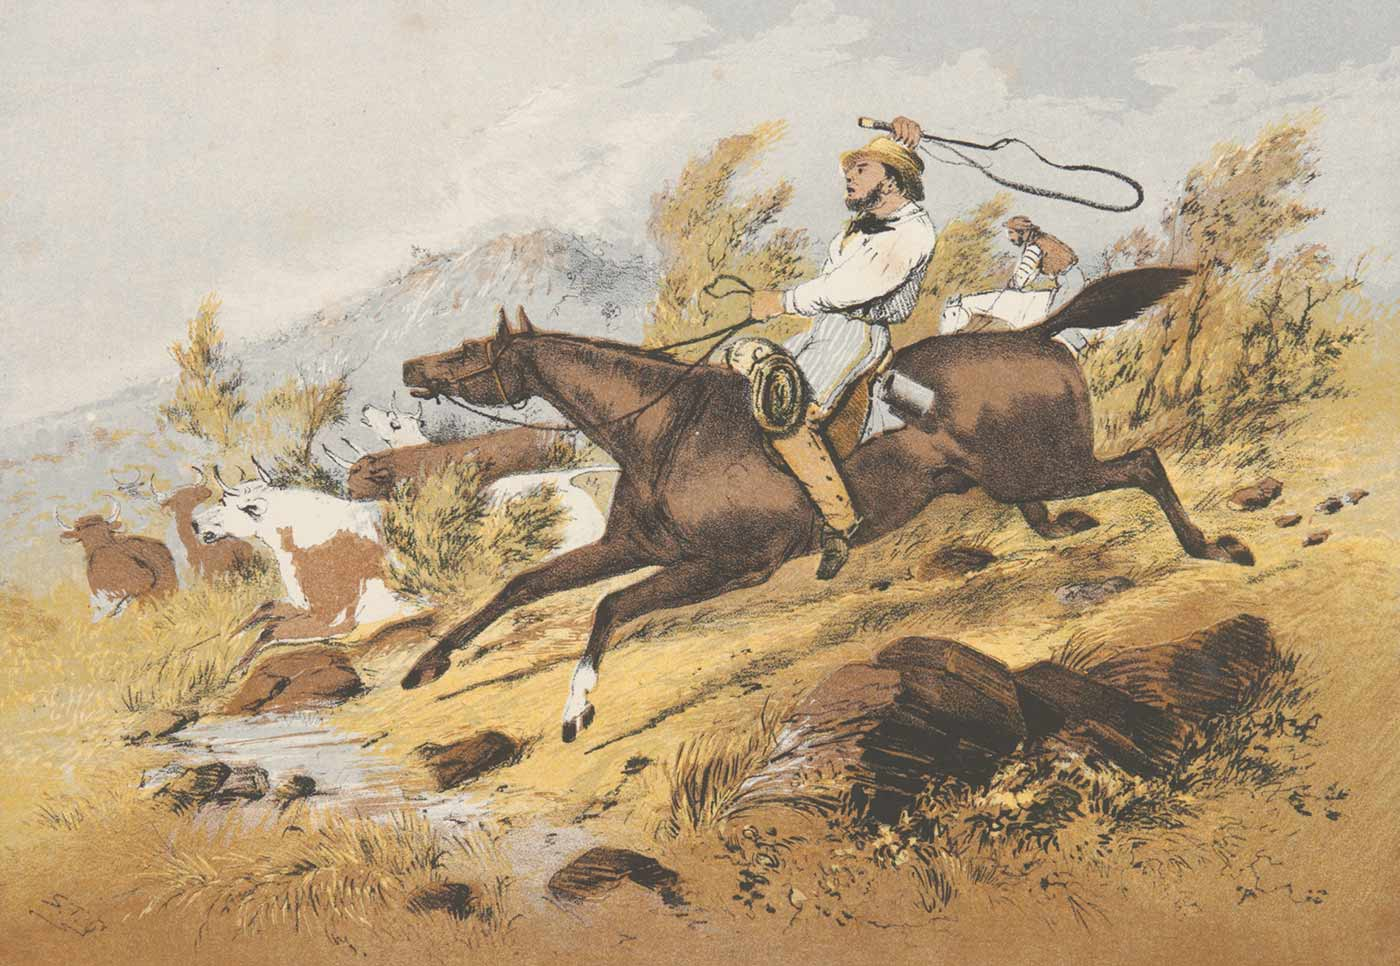 Watercolour image showing a man on horseback chasing cattle through a small creek. - click to view larger image